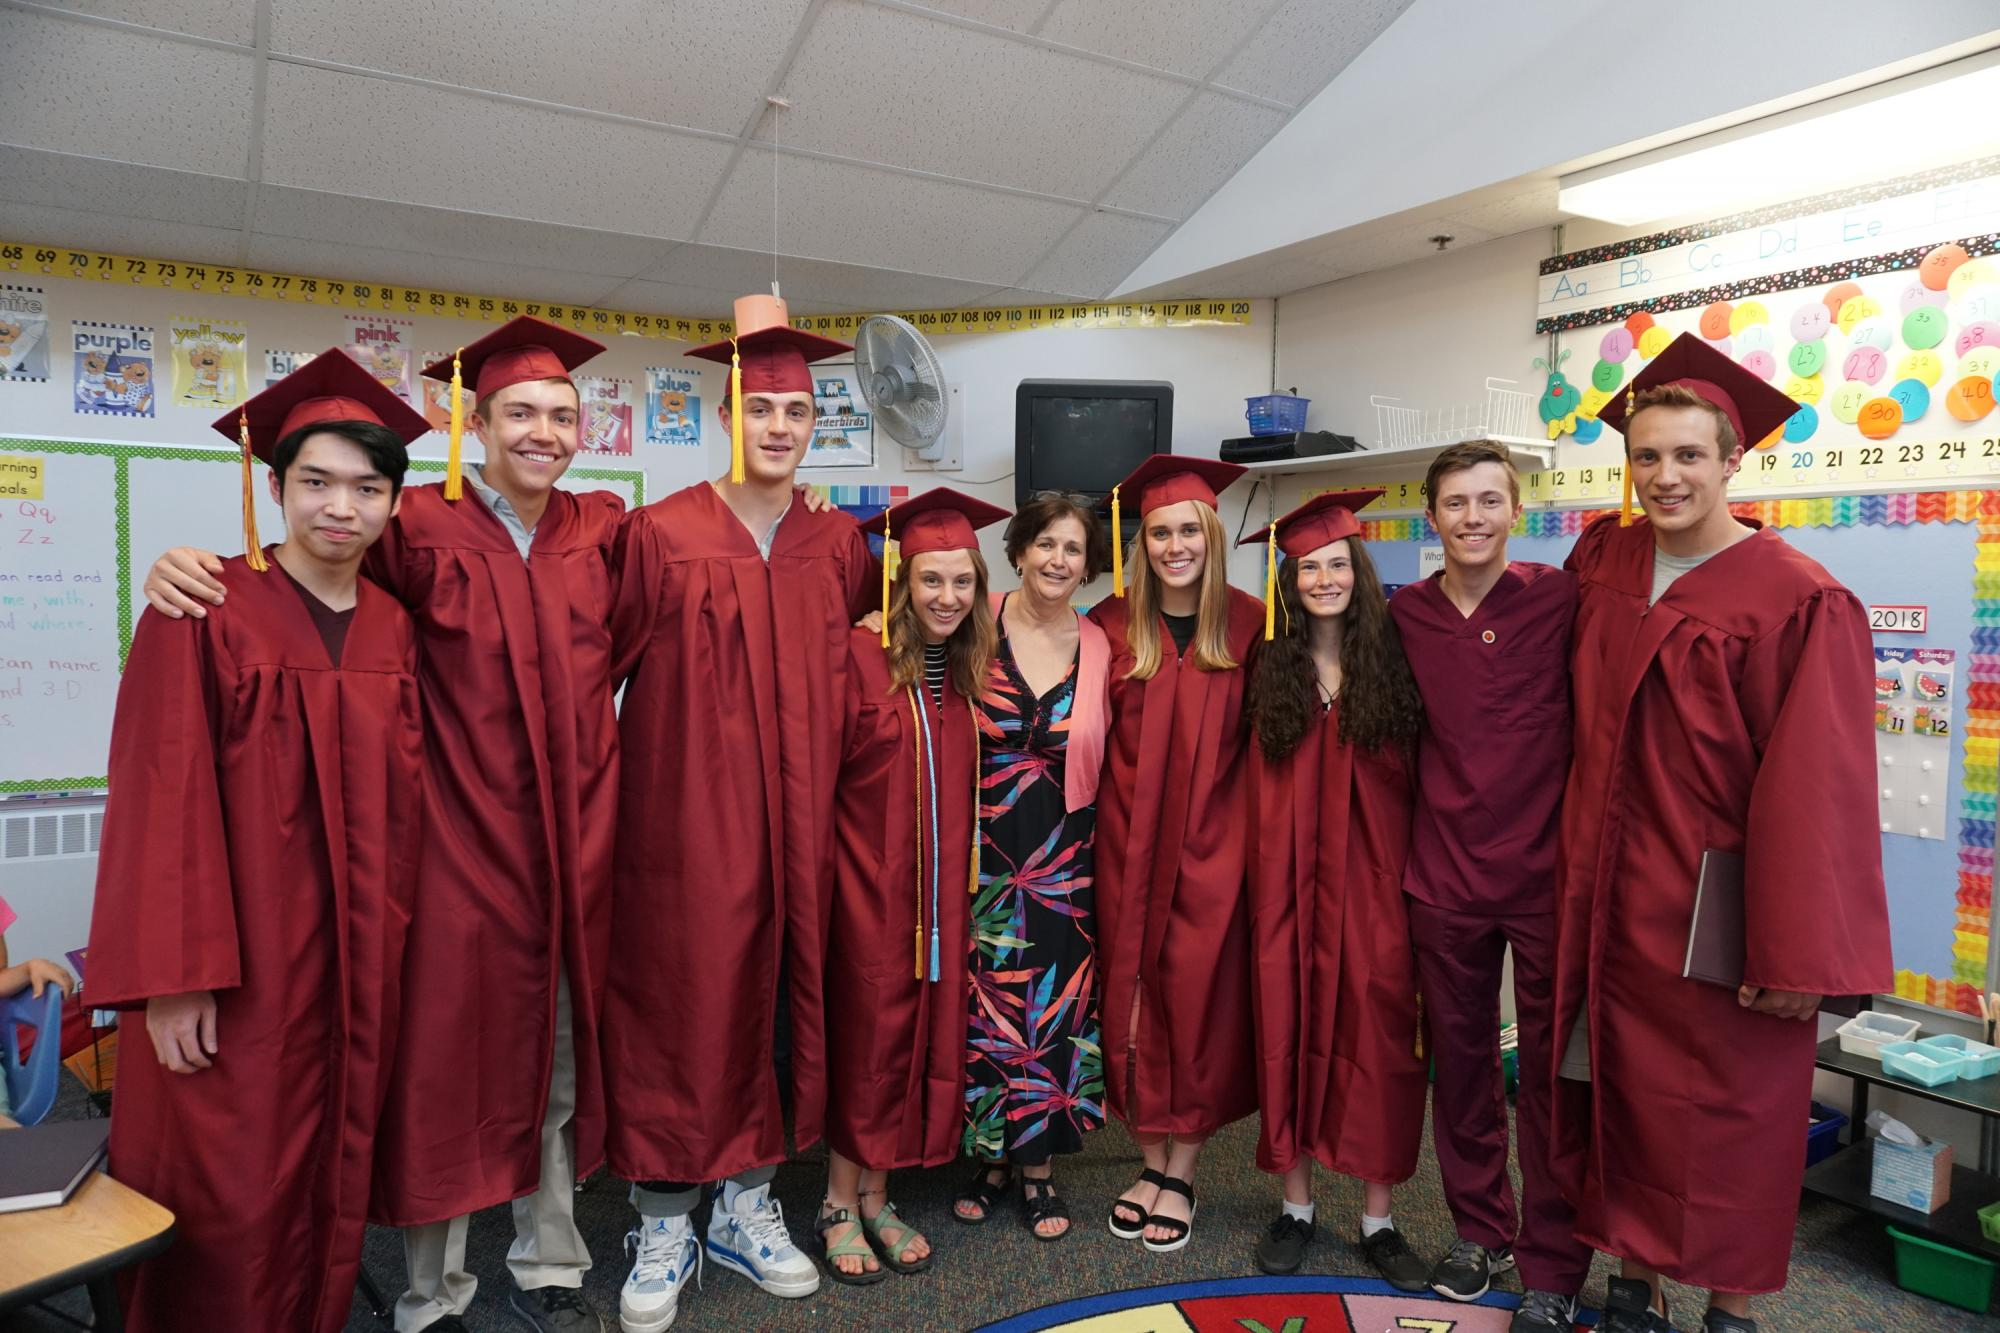 Johnson Elementary kindergarten teacher Lorrie Unrein with a group of former students in high school graduation gowns